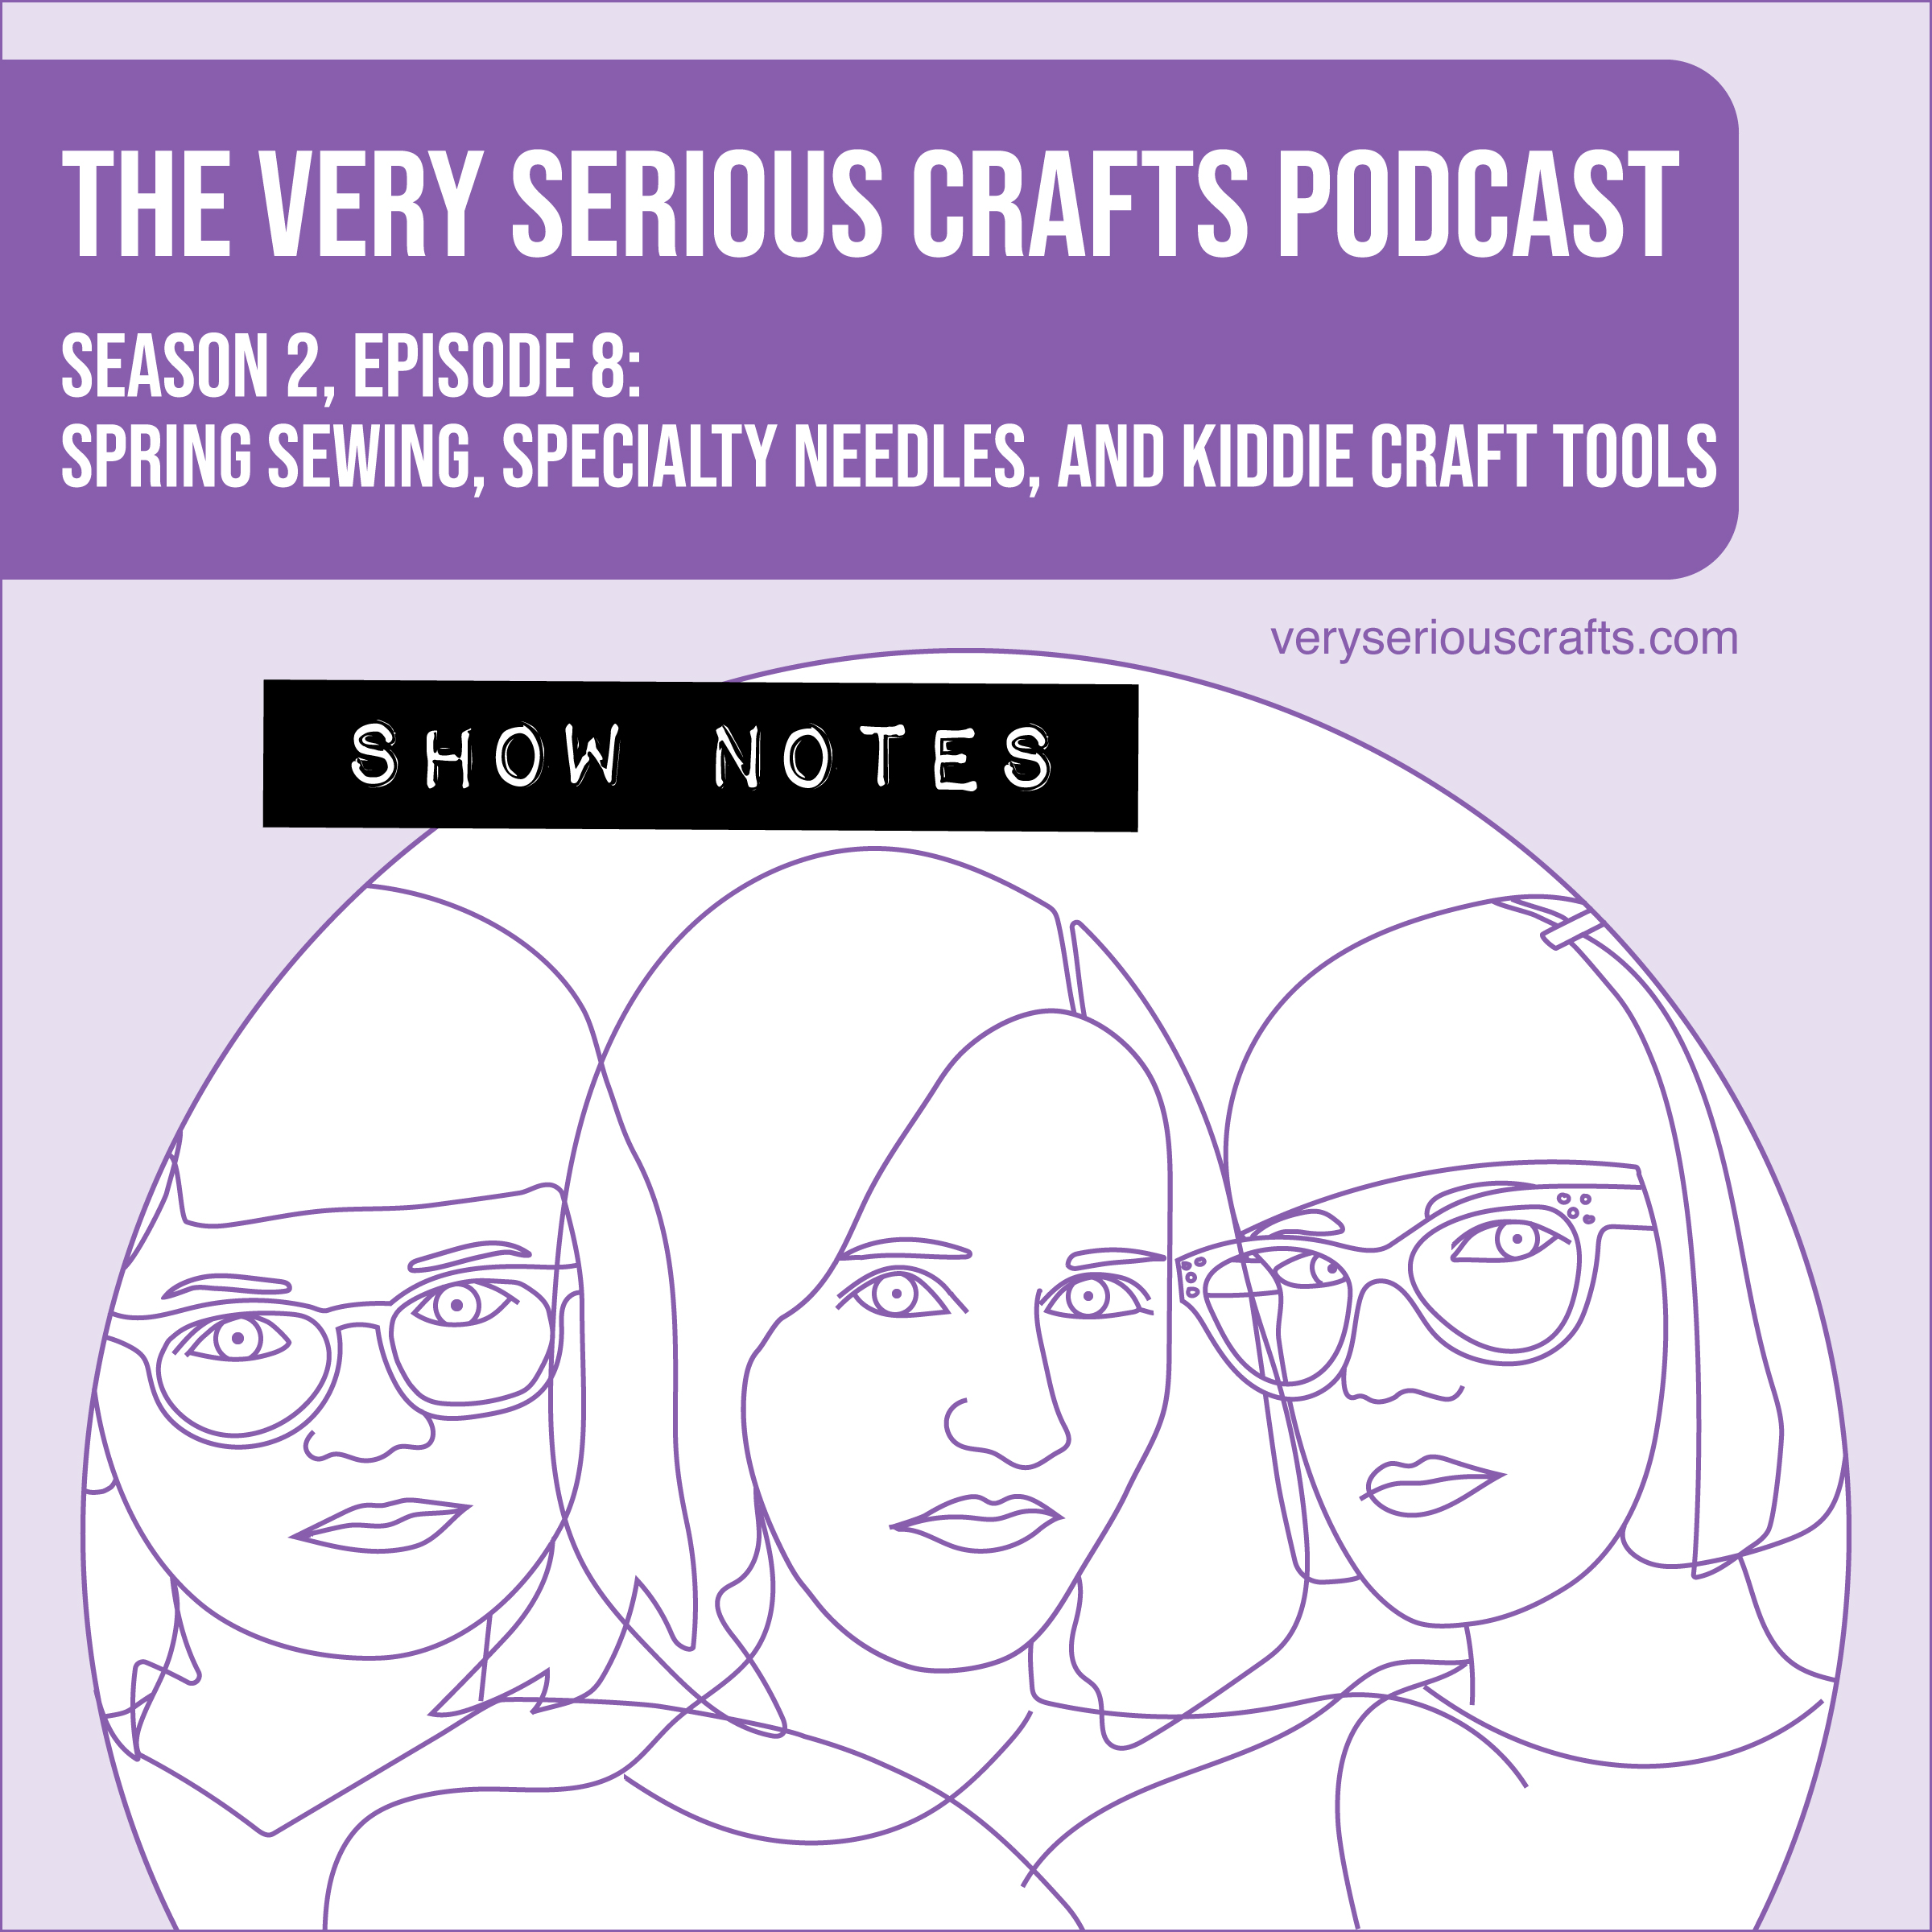 The Very Serious Crafts Podcast, Season 2: Episode 8 – Show Notes